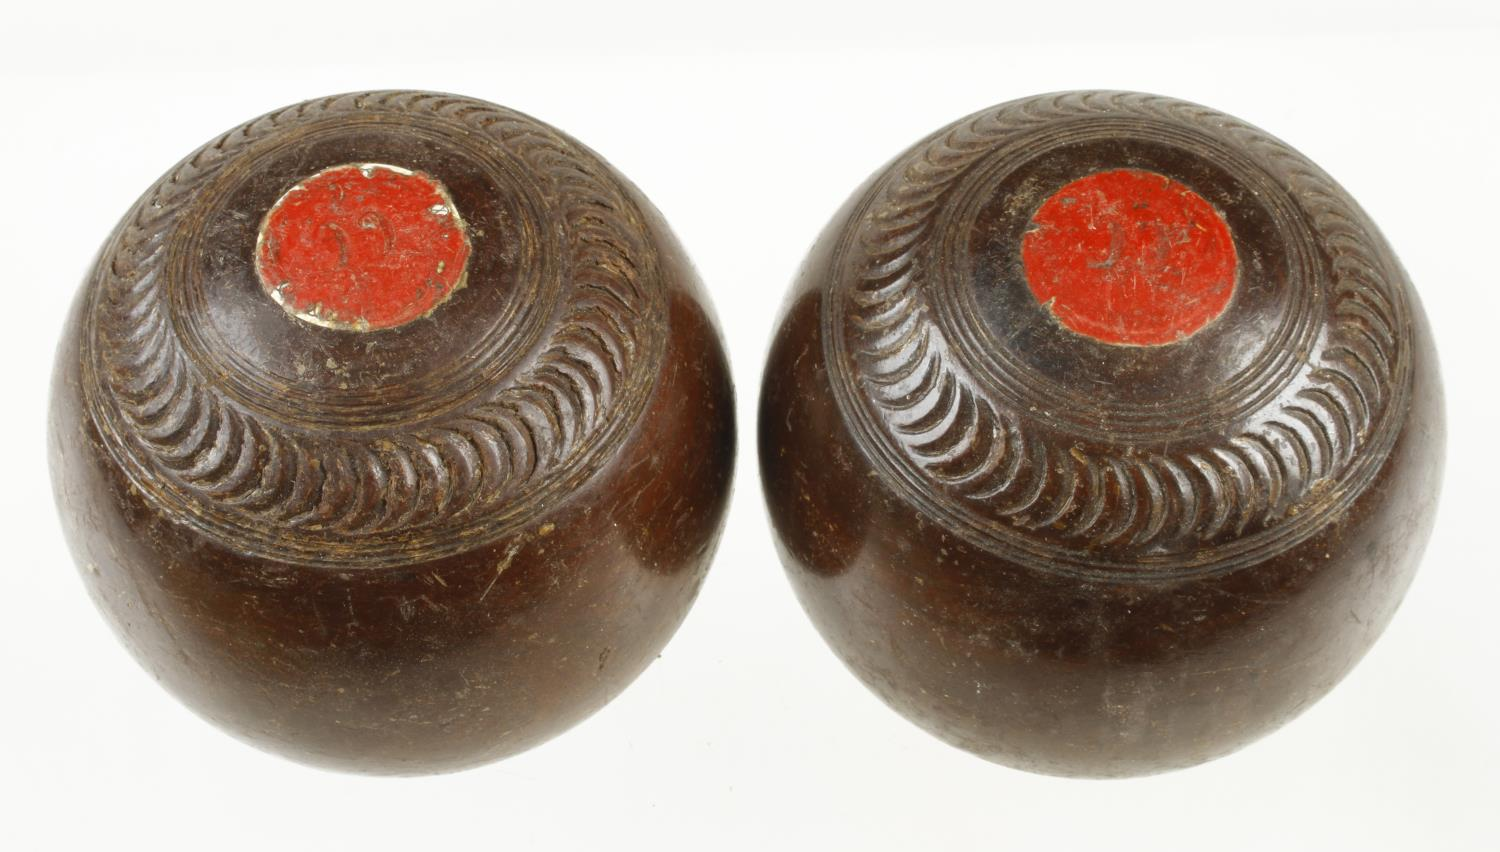 A set of 4 bowls with two jacks G - Image 2 of 3